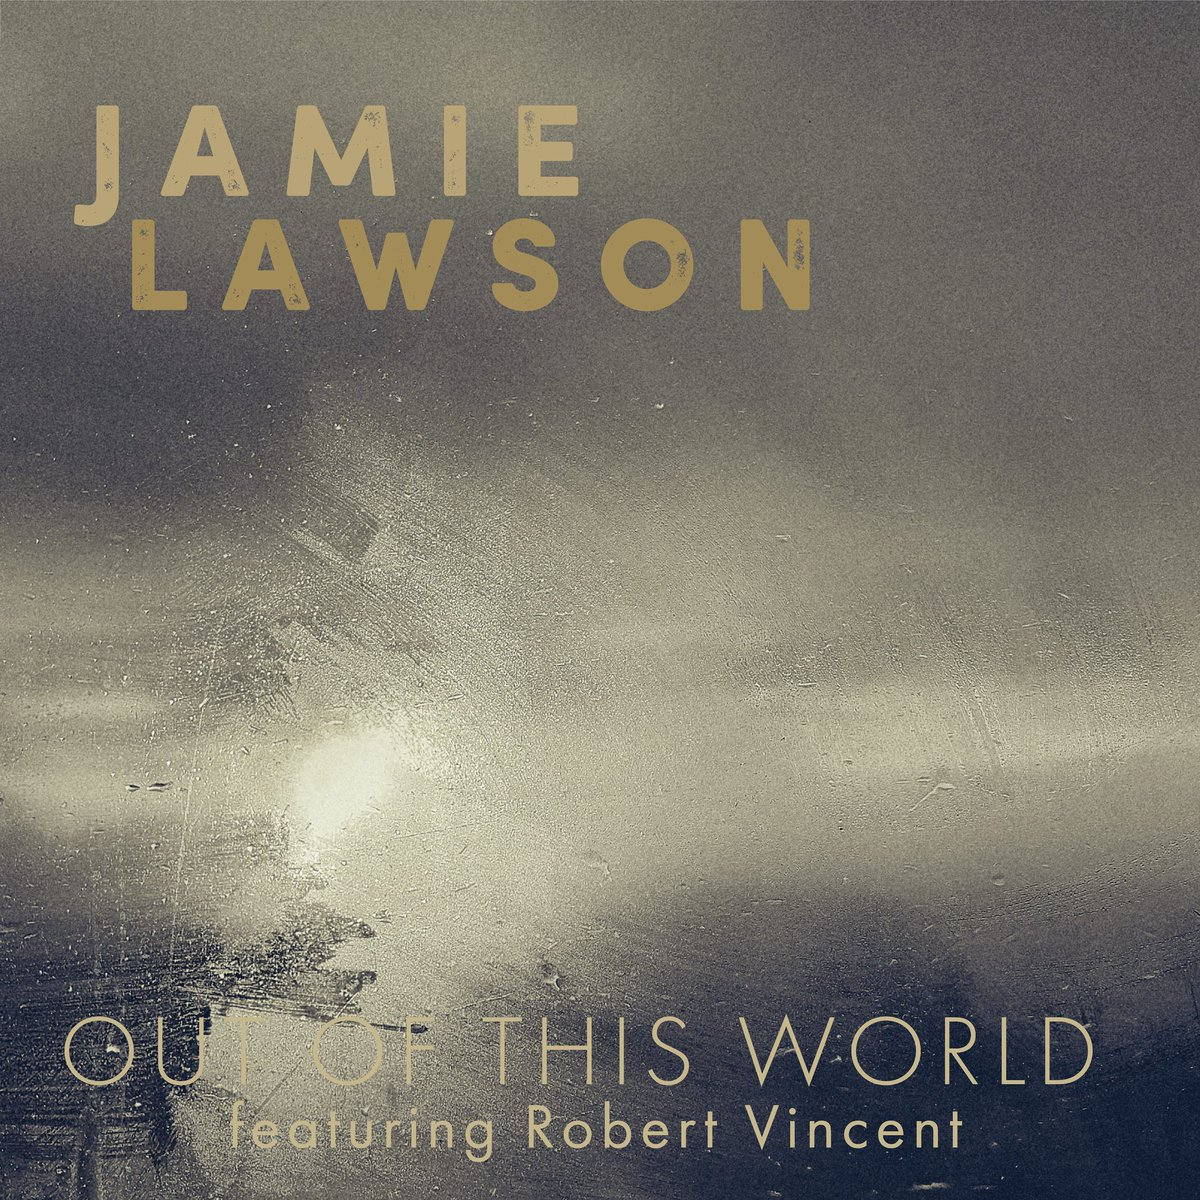 If you've already pre-saved the new Talking Pictures EP then you should recieve the next song from it tomorrow.  'Out Of This World' features 2X UK American Award nominee @RobVincentMusic. We wrote the song together and I think it's fair to say it's one we're very proud of. Jx